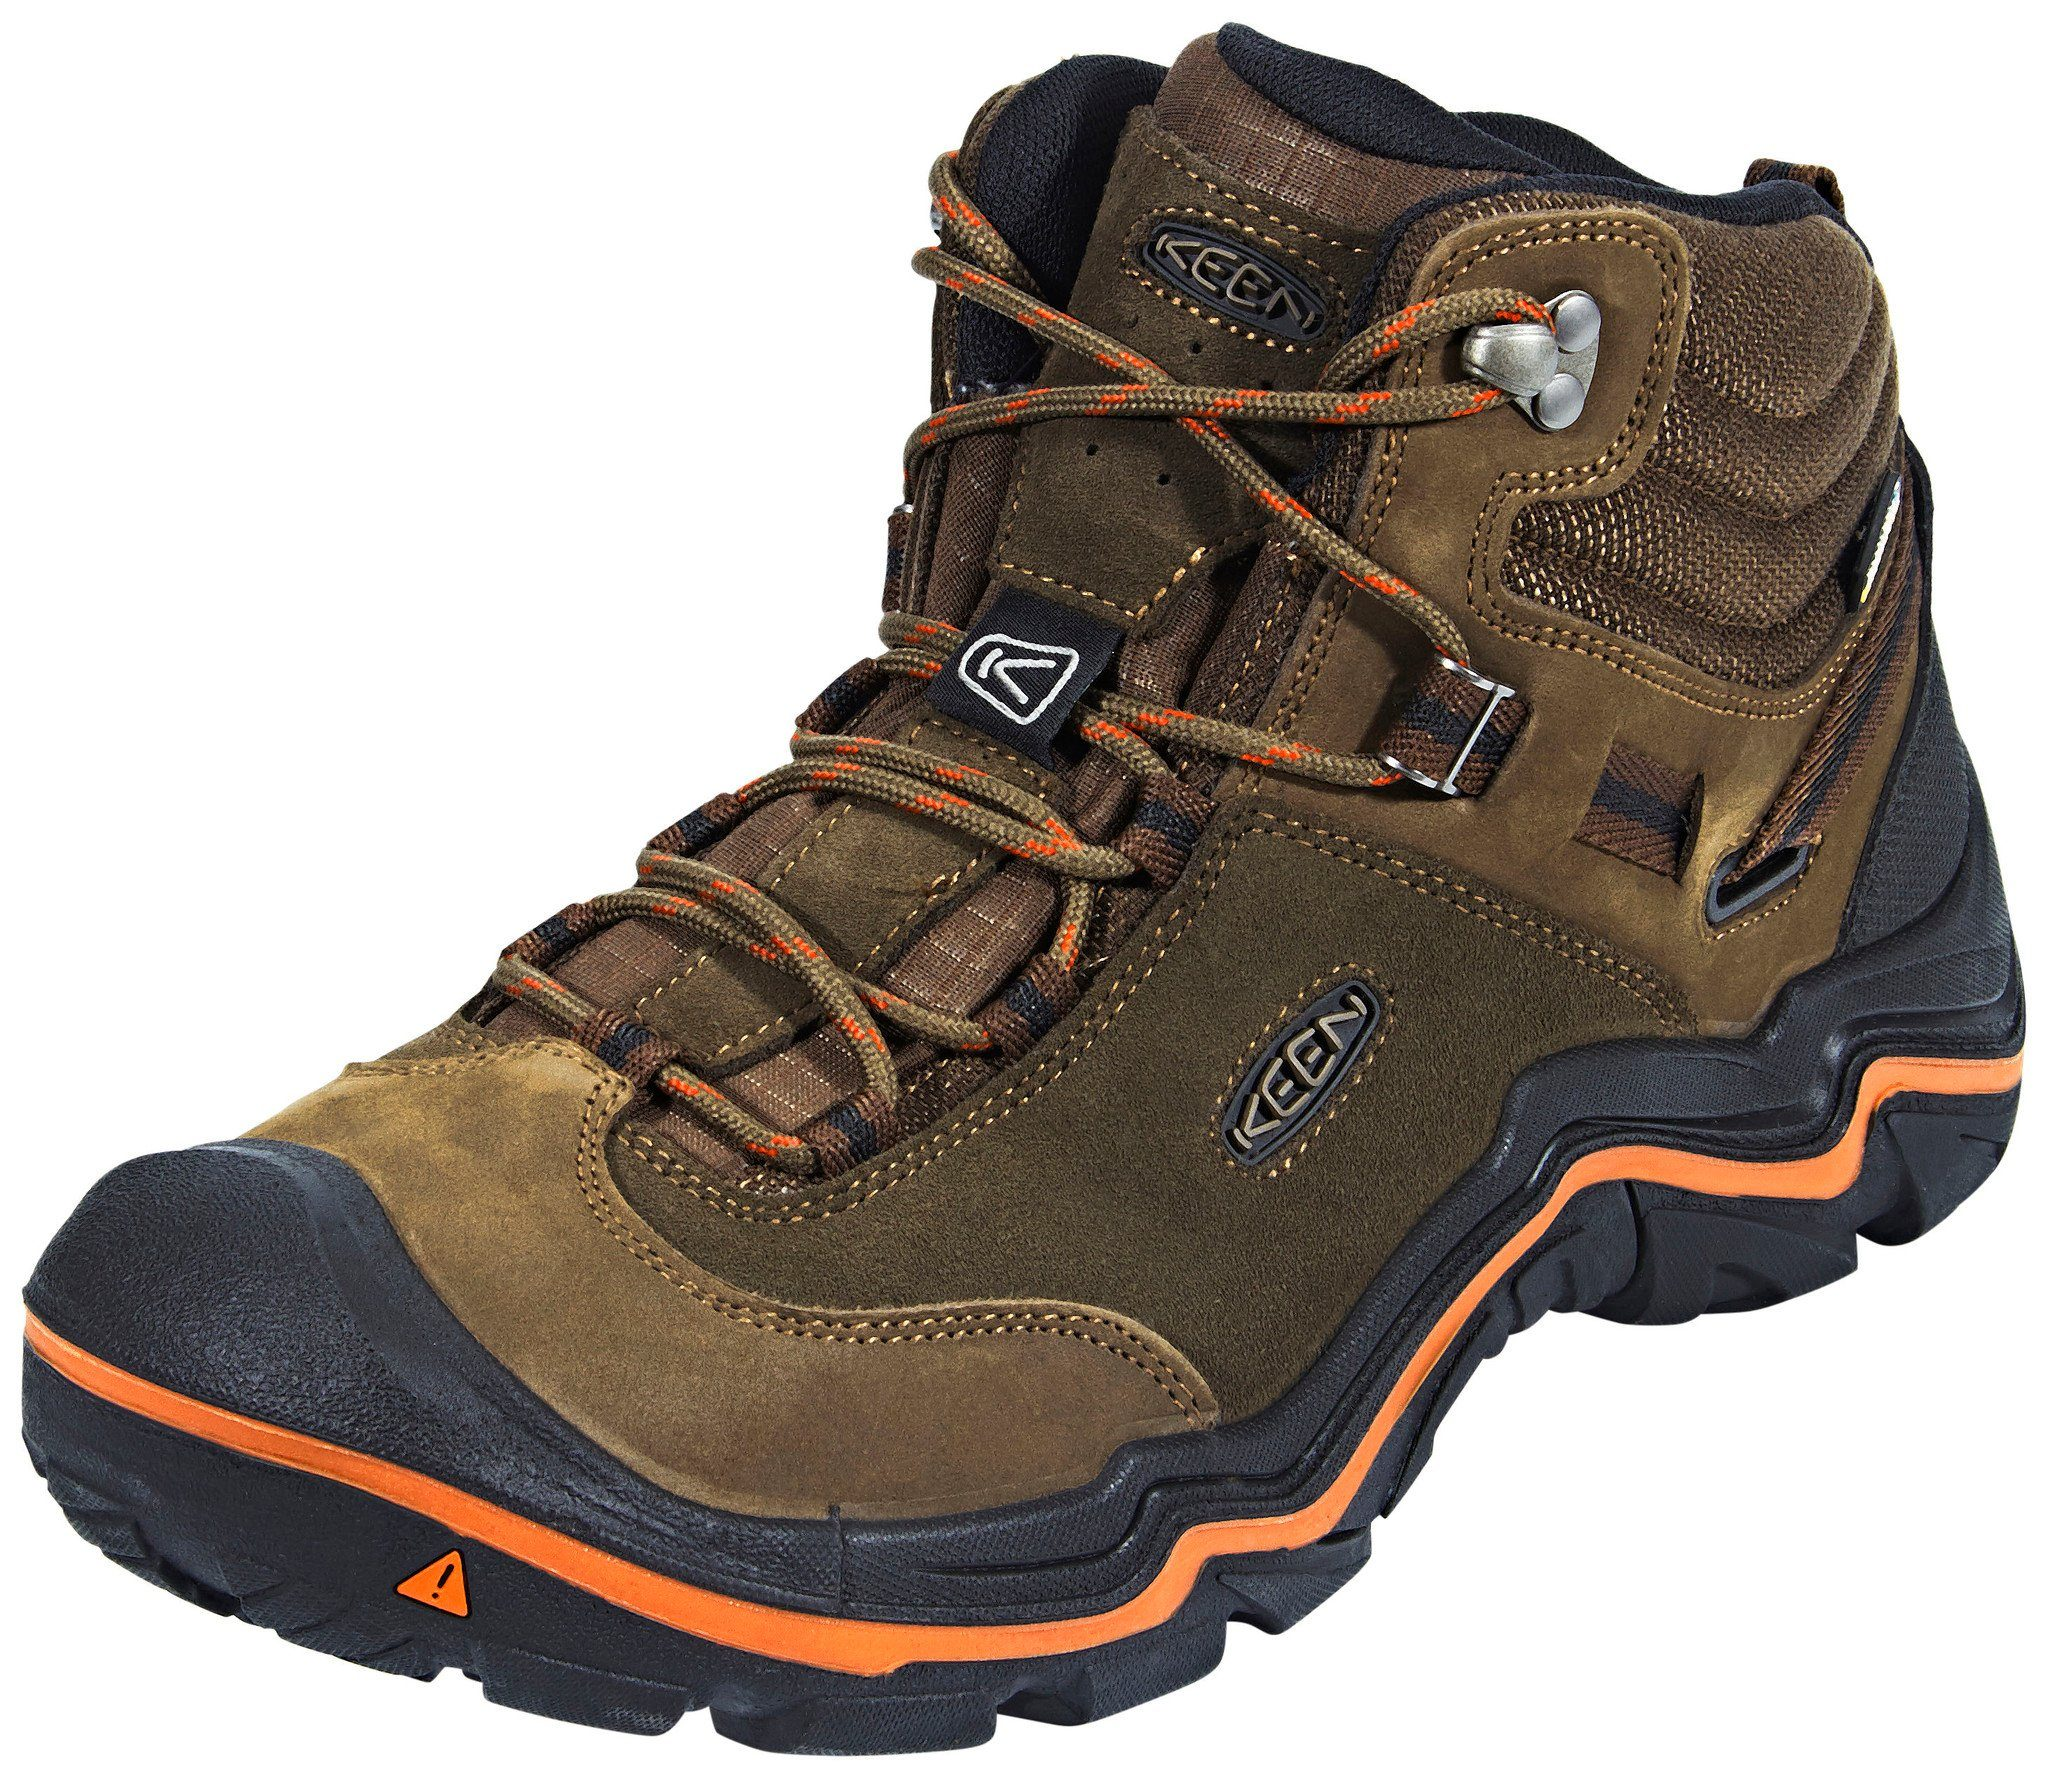 Keen Kletterschuh Wanderer Mid WP Shoes Men  braun